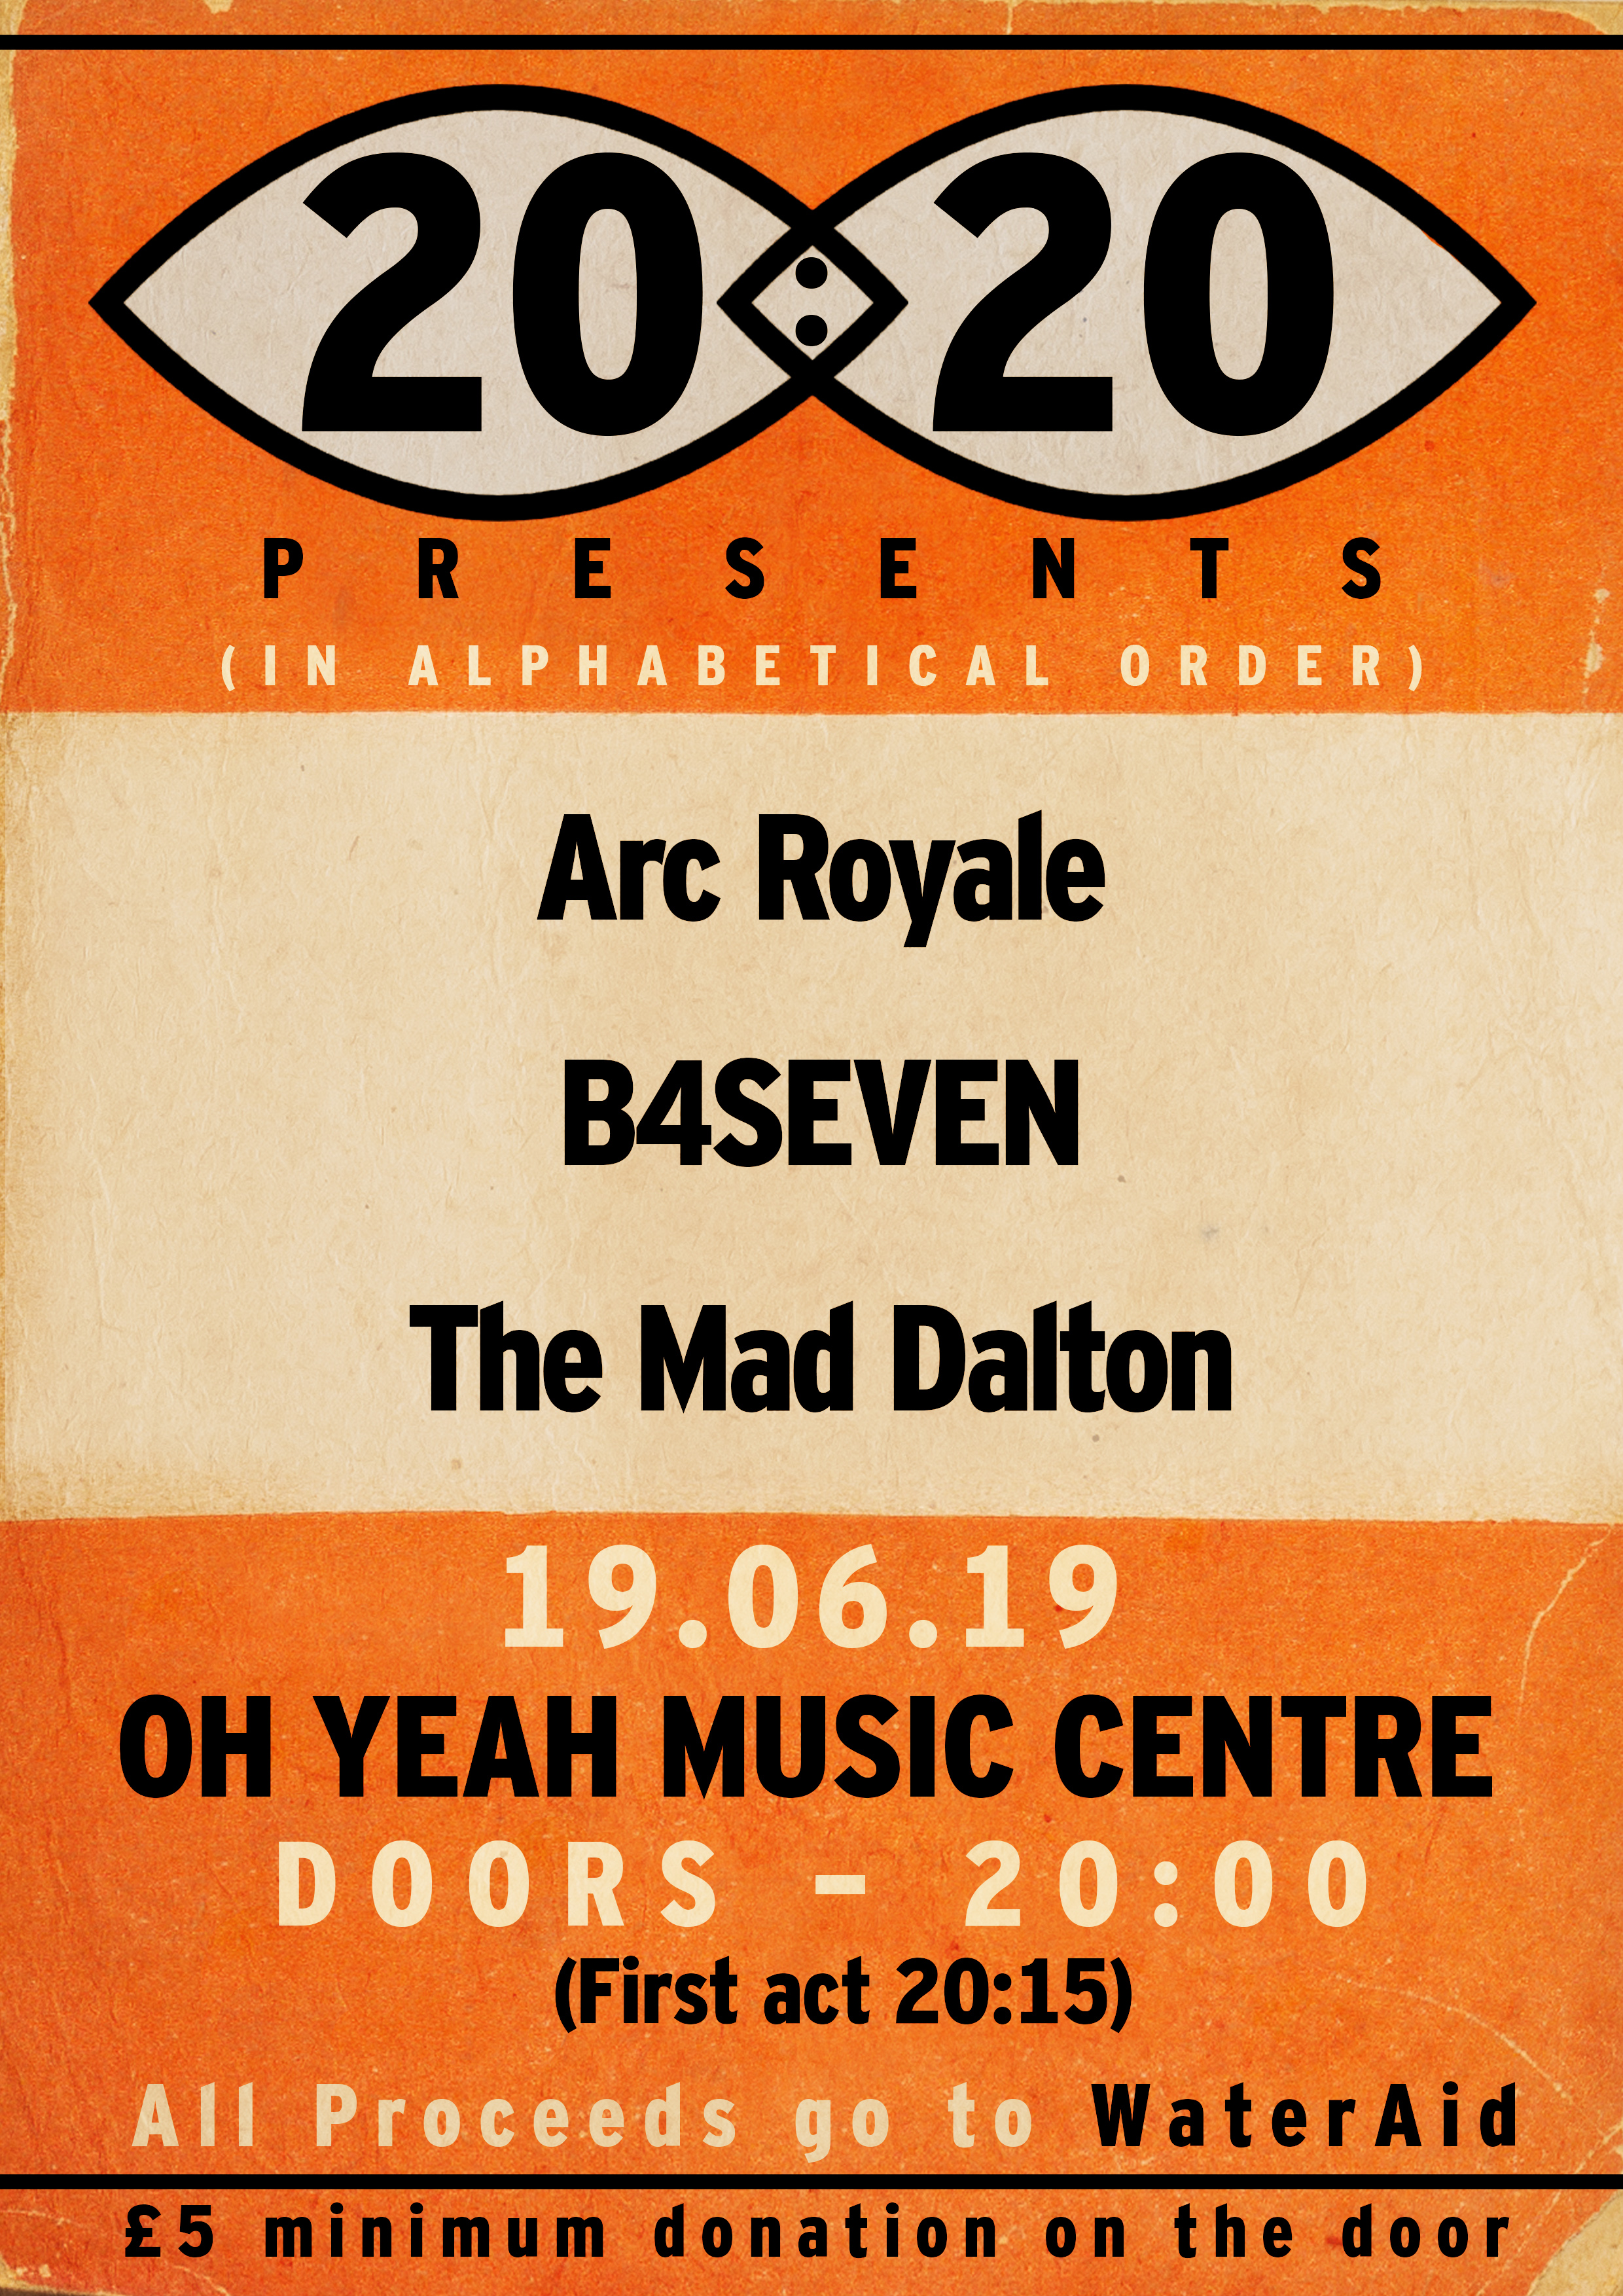 Best Songwriters 2020 20:20 #011 // Arc Royale // B4SEVEN // The Mad Dalton – Oh Yeah